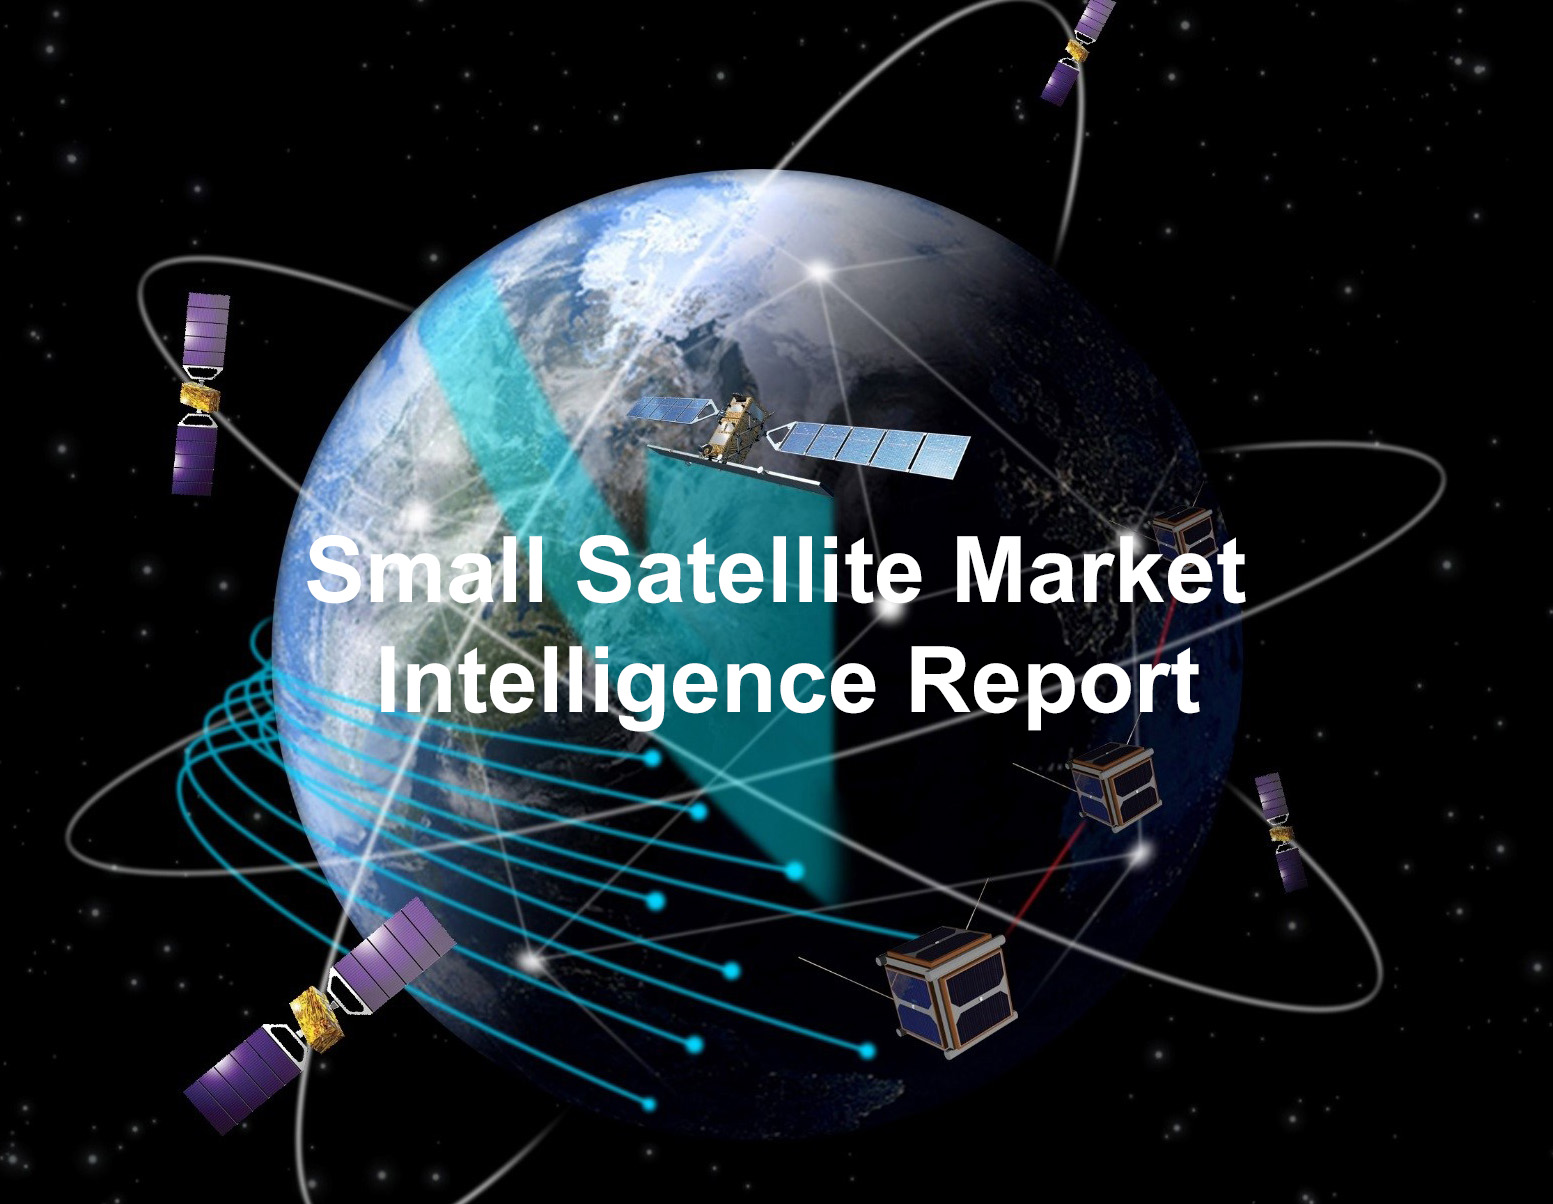 Small Satellite Market Intelligence